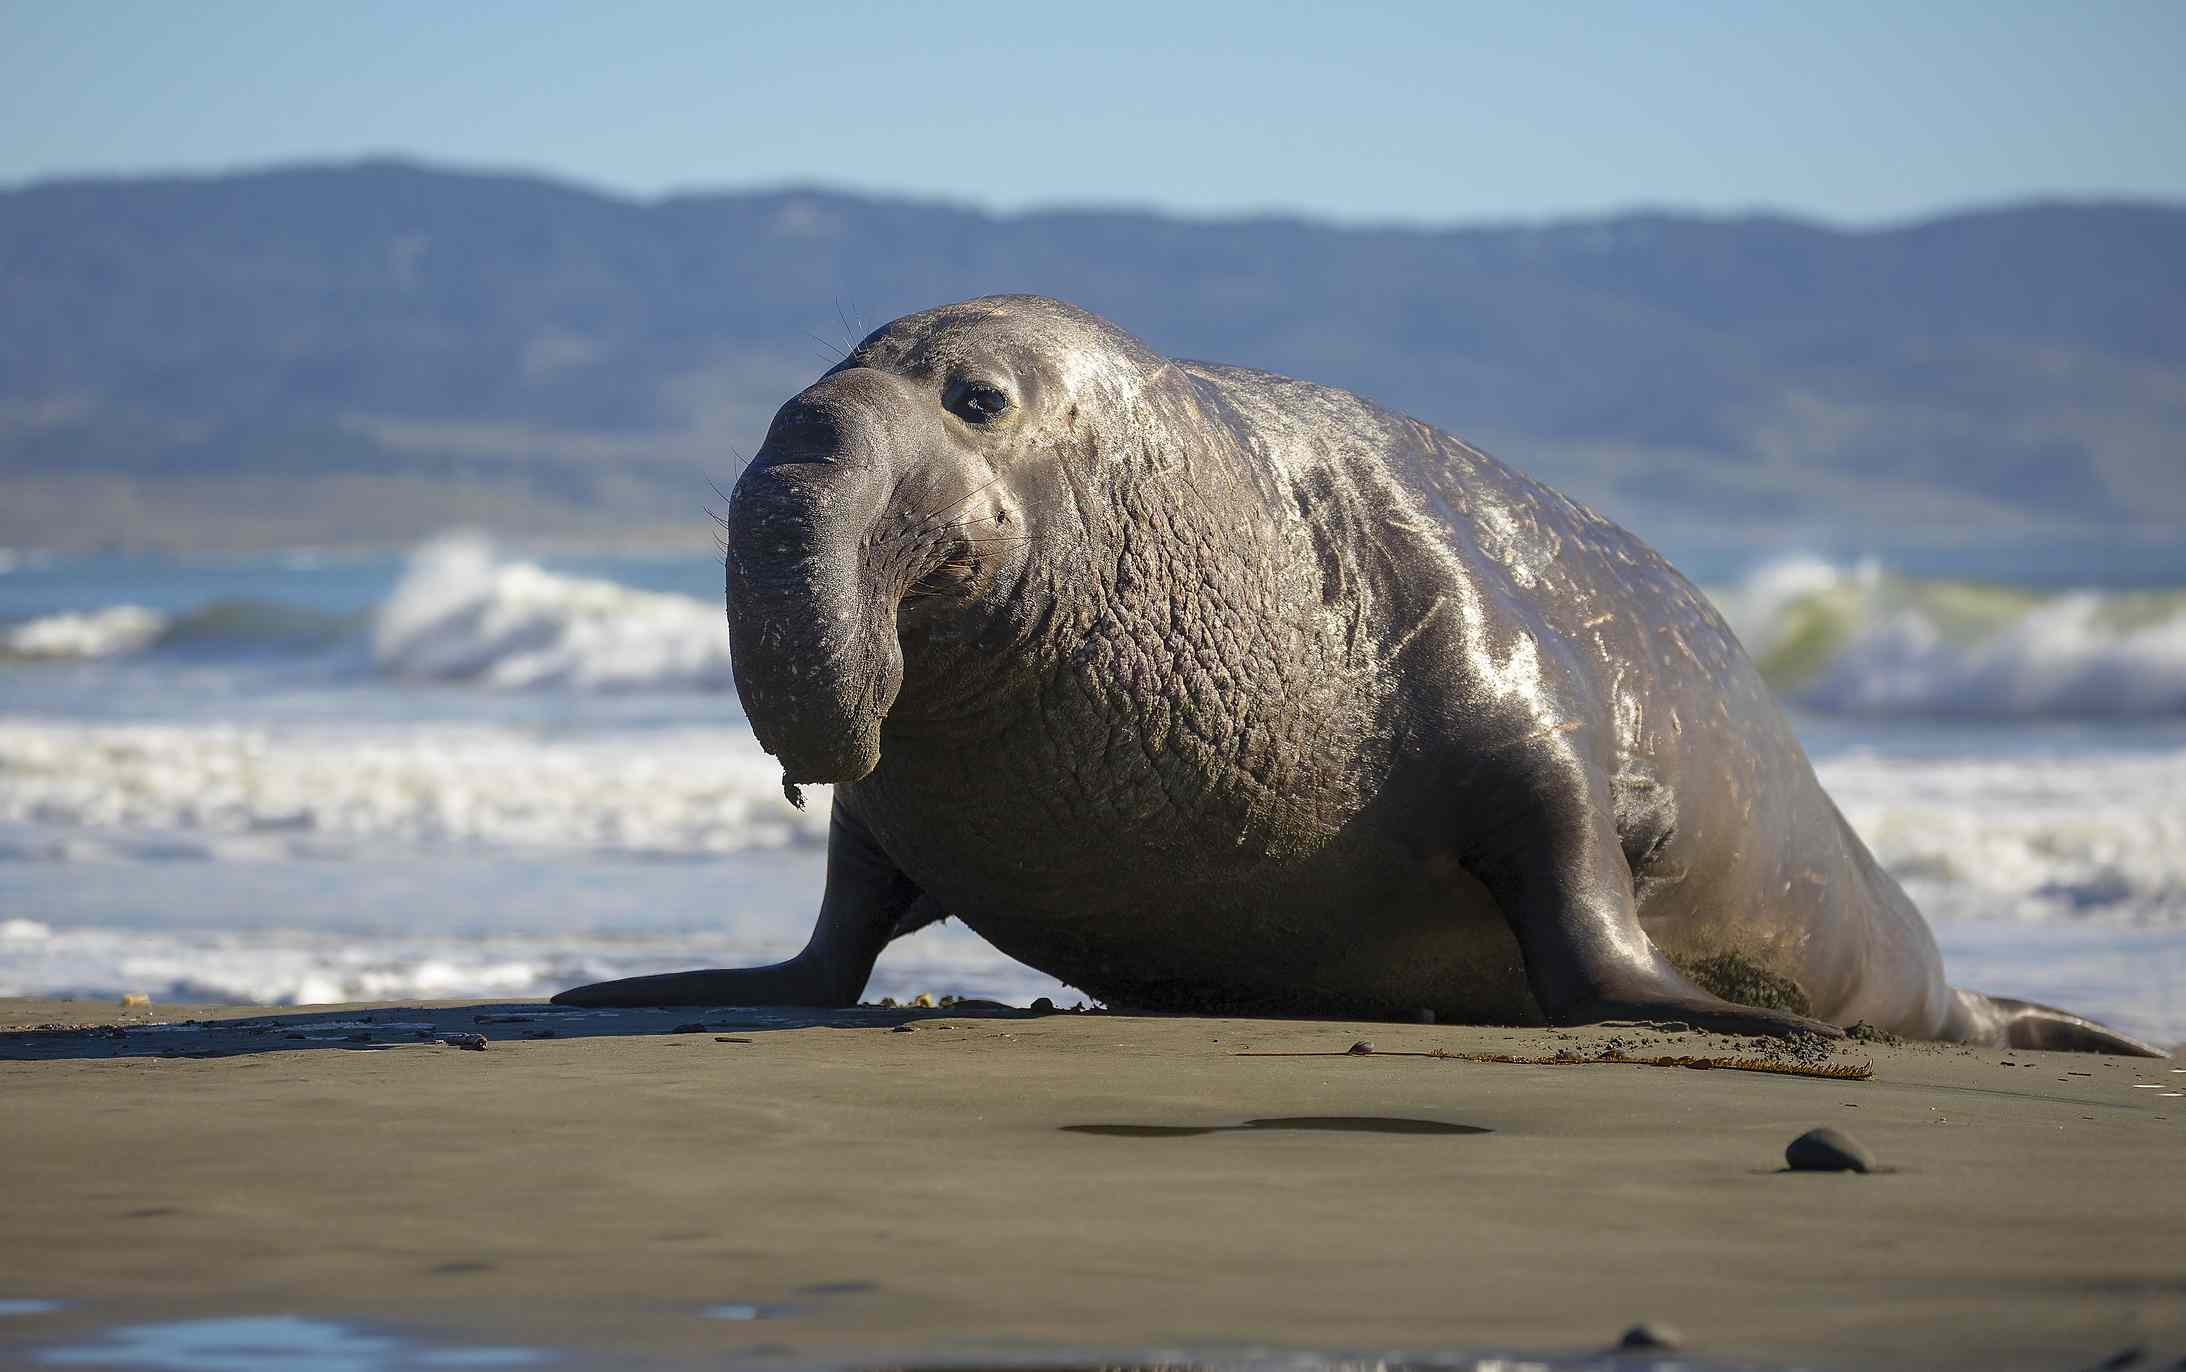 elephant seal with large nose lies on beach